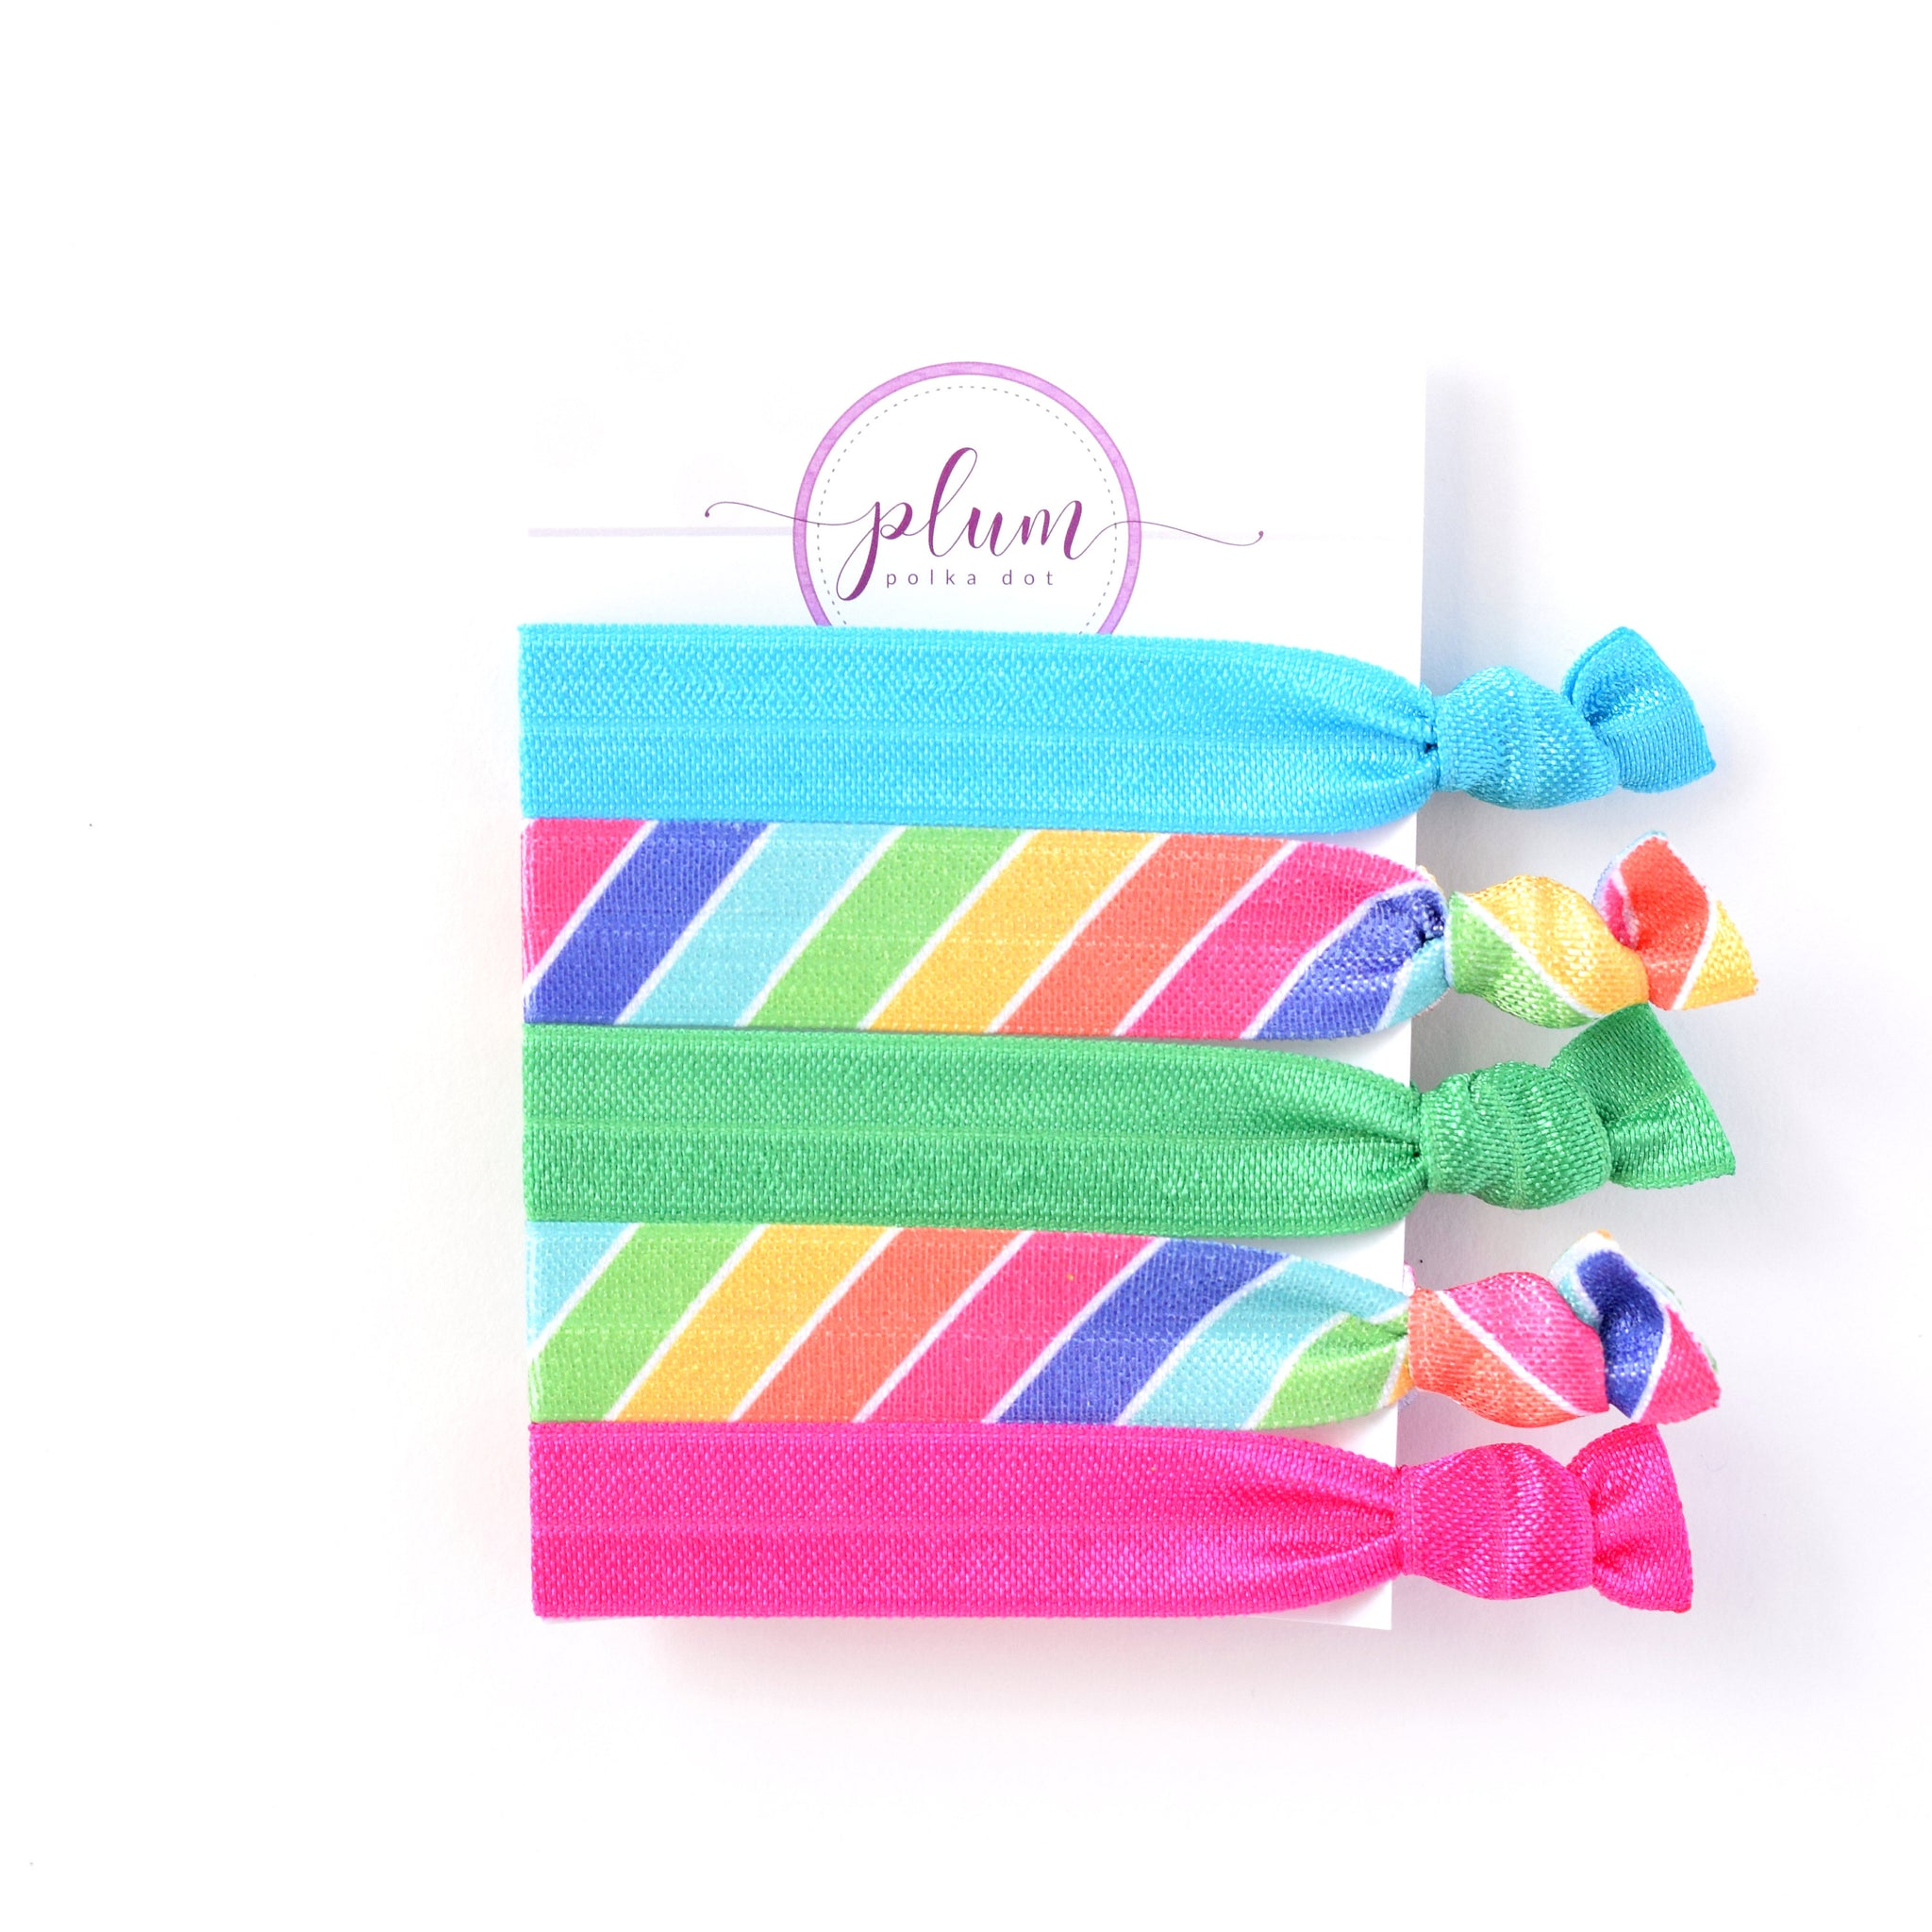 Rainbow Hair Tie Bracelet - Set of 5 - @PlumPolkaDot